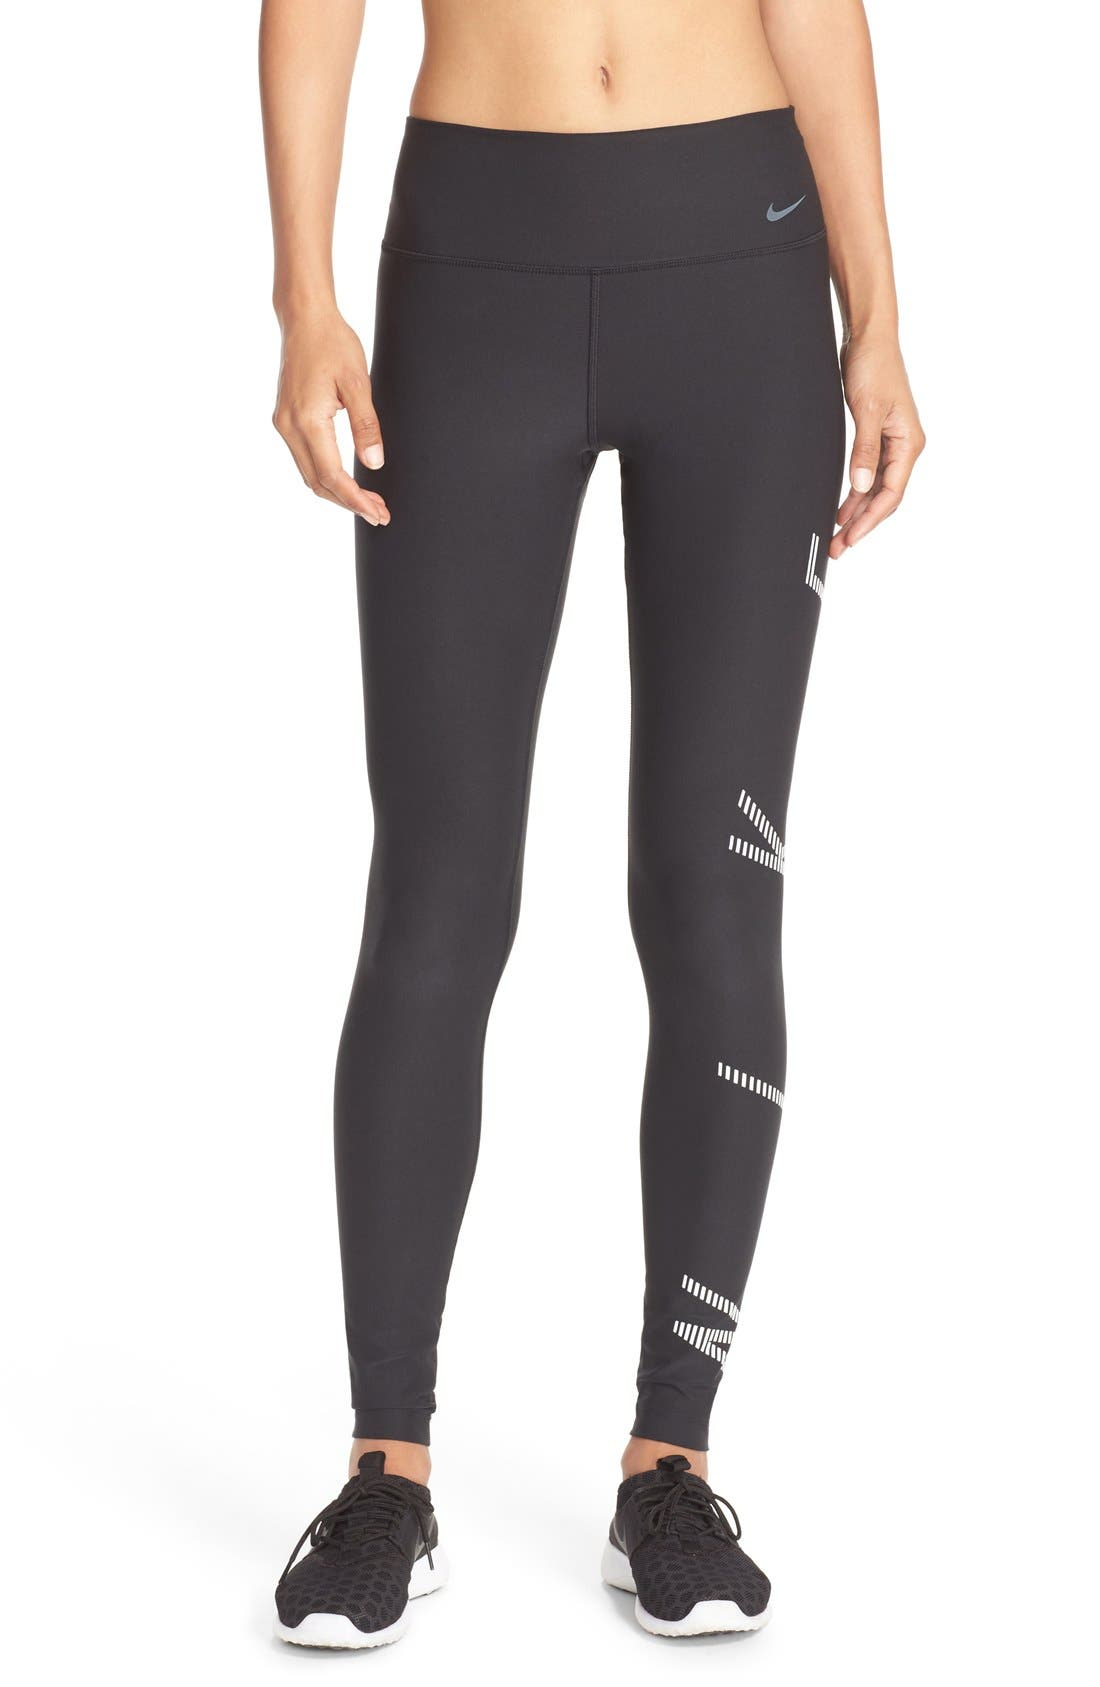 NIKE, Power Legendary Graphic Tights, Main thumbnail 1, color, 010